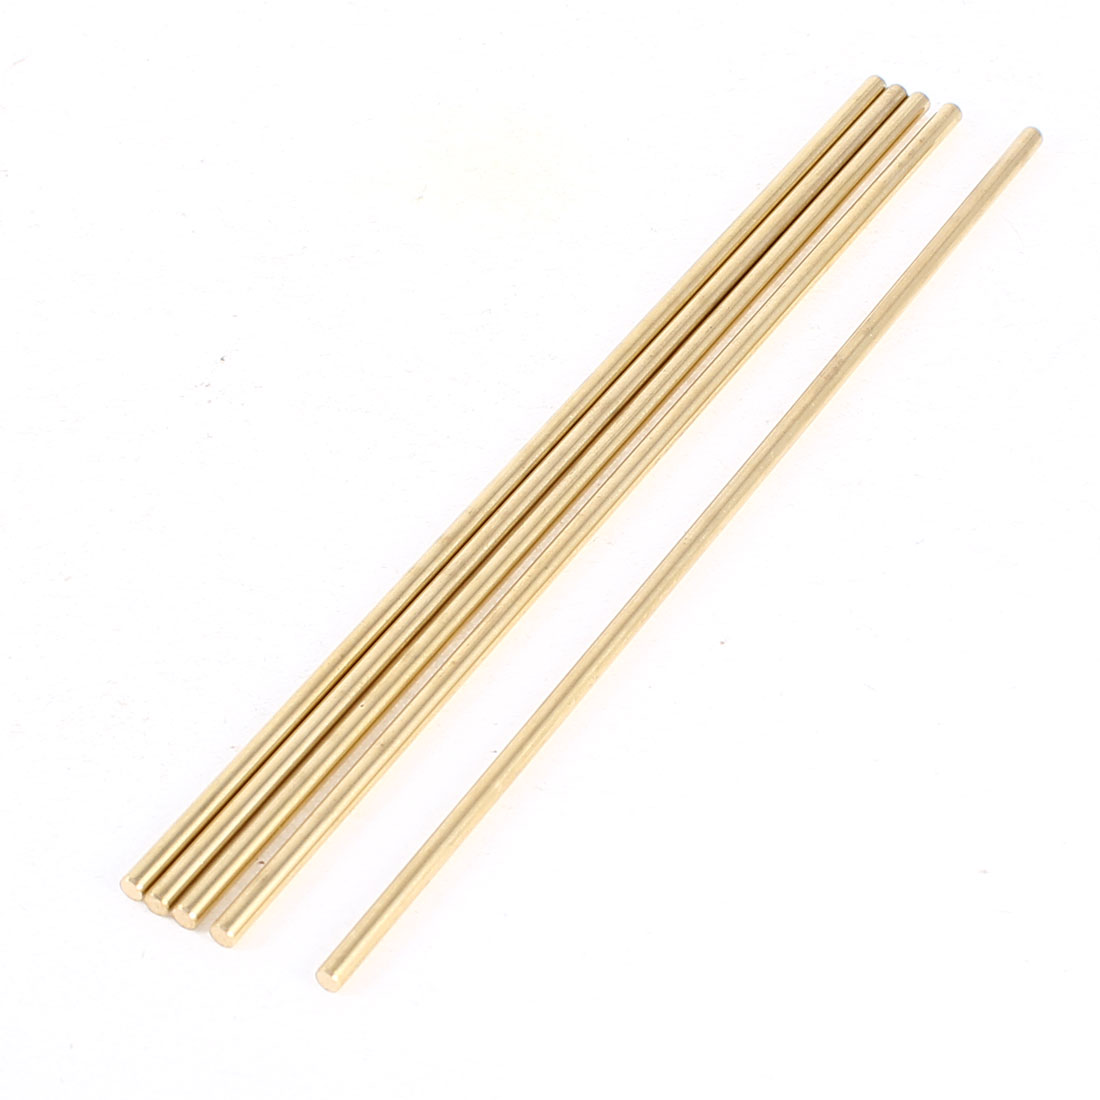 5 Pcs Car Helicopter Model Toy DIY Brass Axles Rod Bars 3mm x 150mm